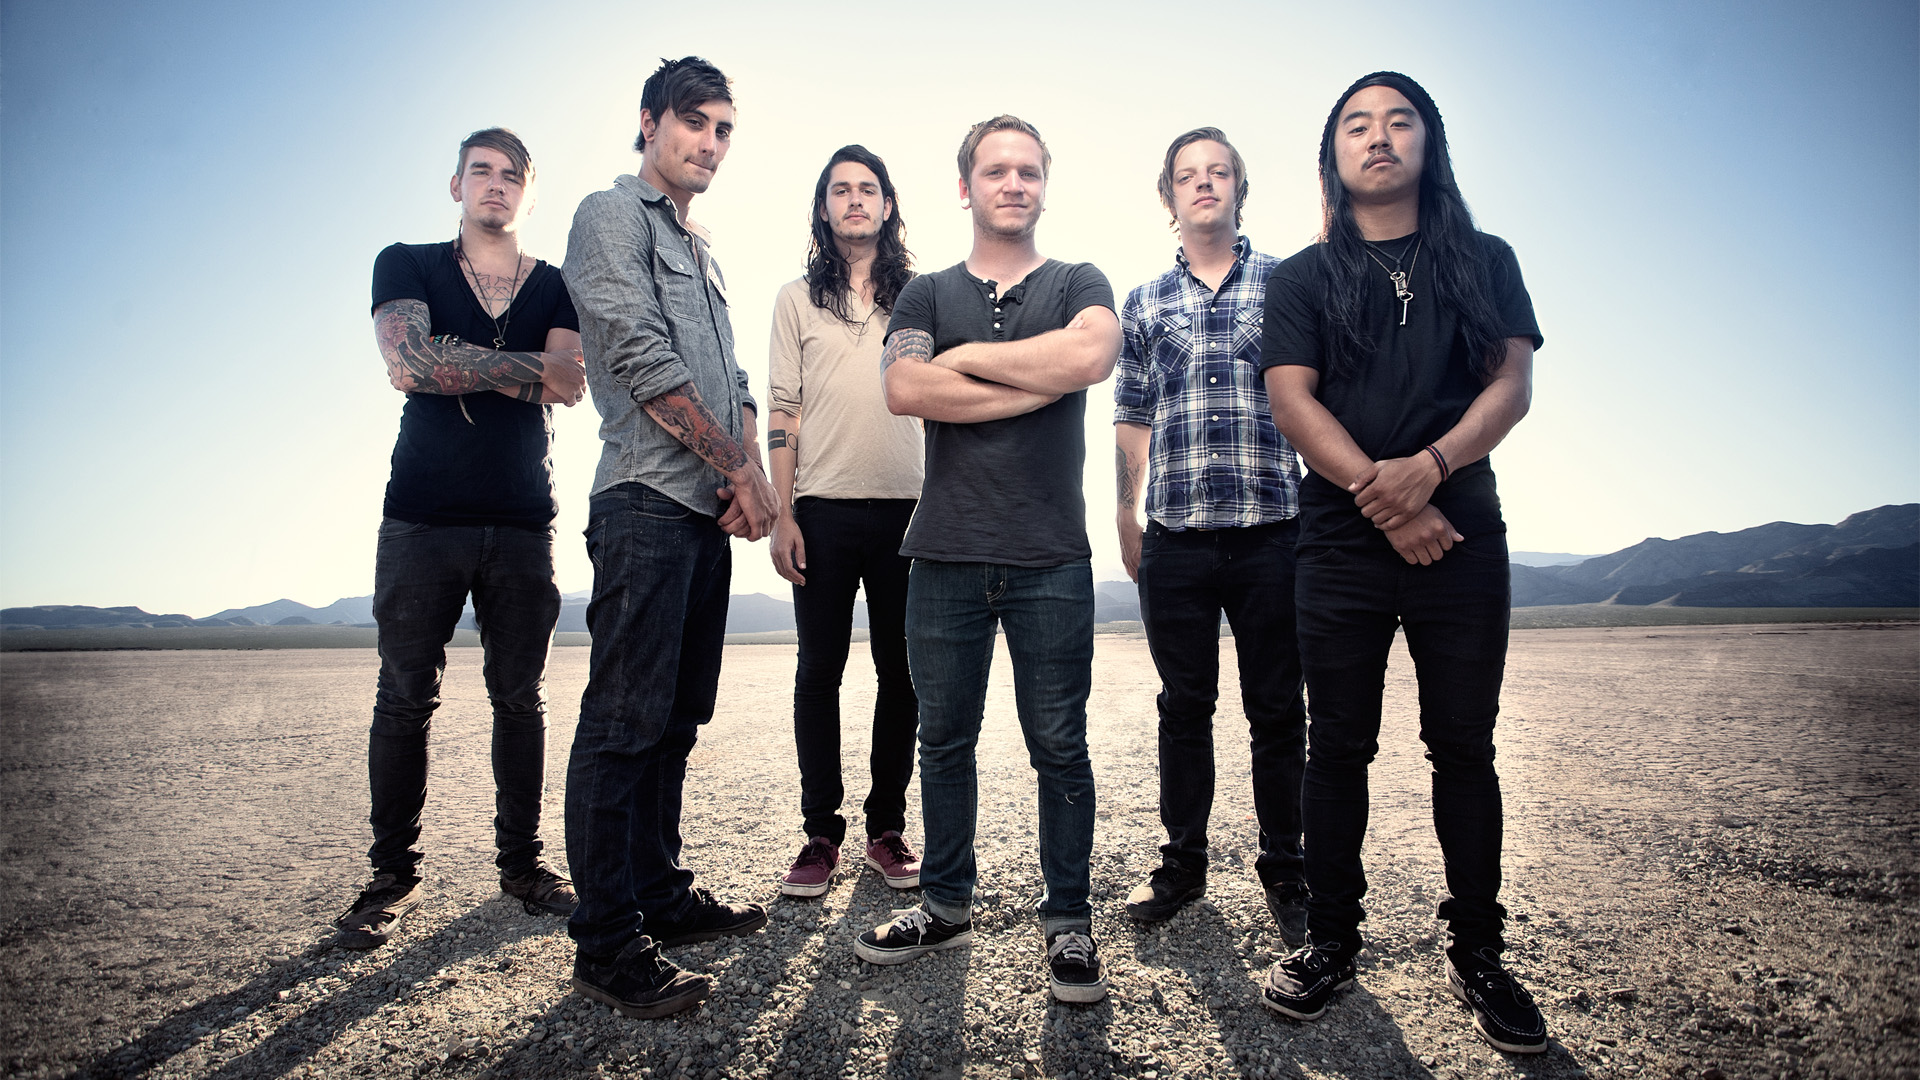 We came as romans wallpaper hope